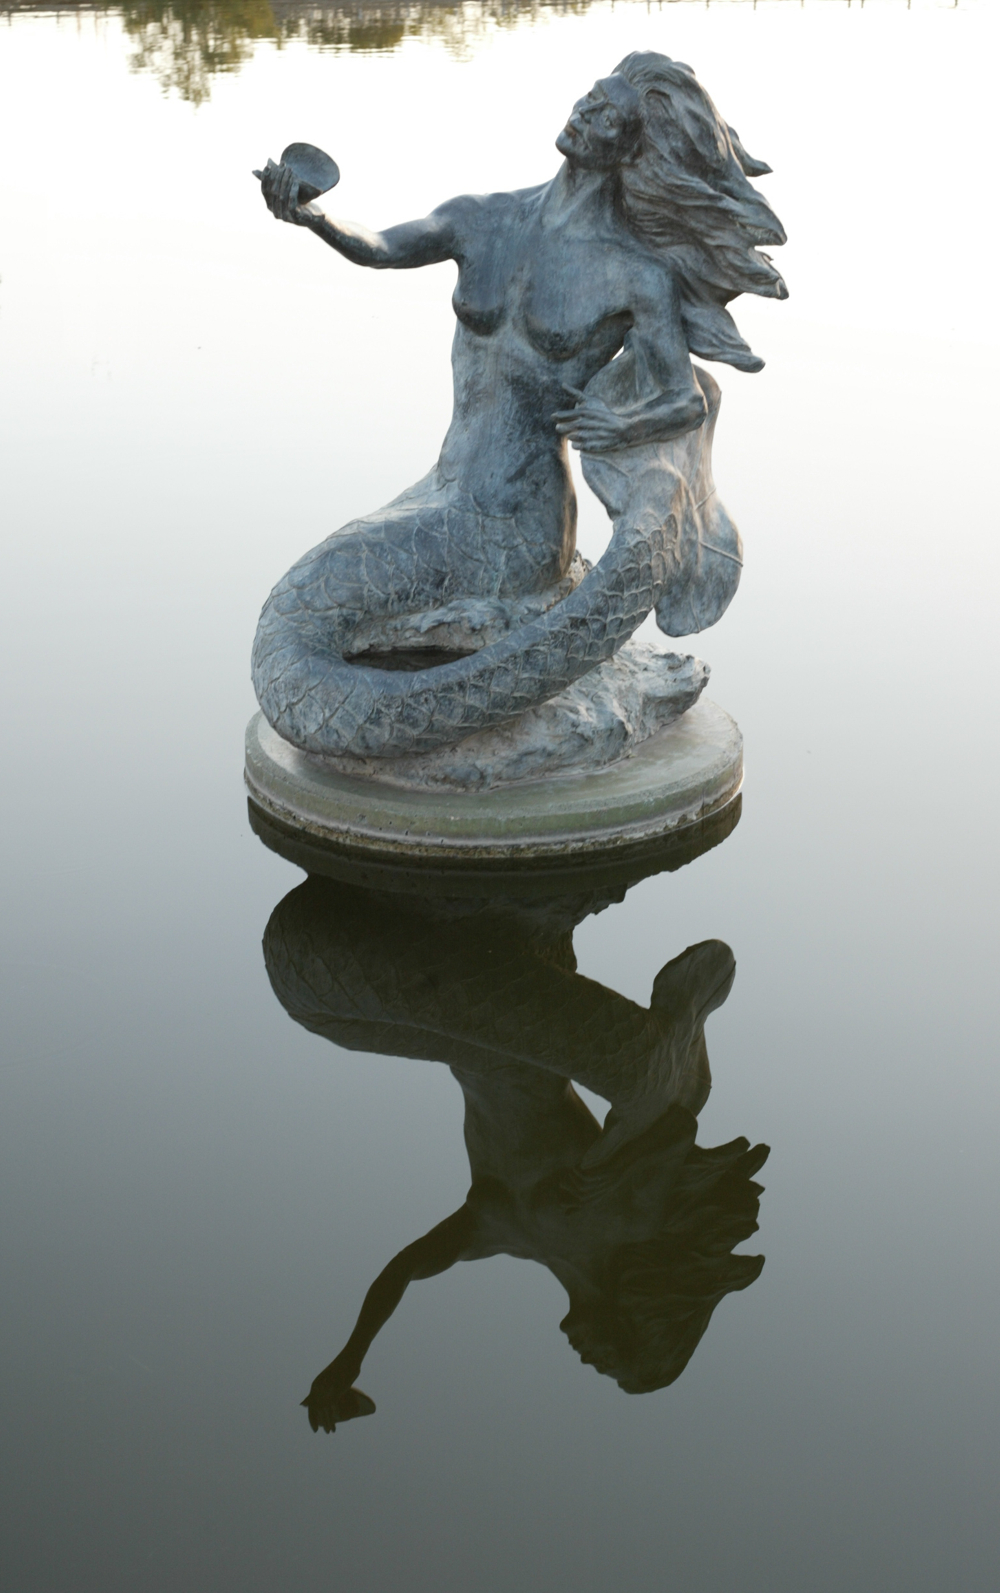 Pearl of the Conchos - a Mermaid statue in San Angelo, Texas